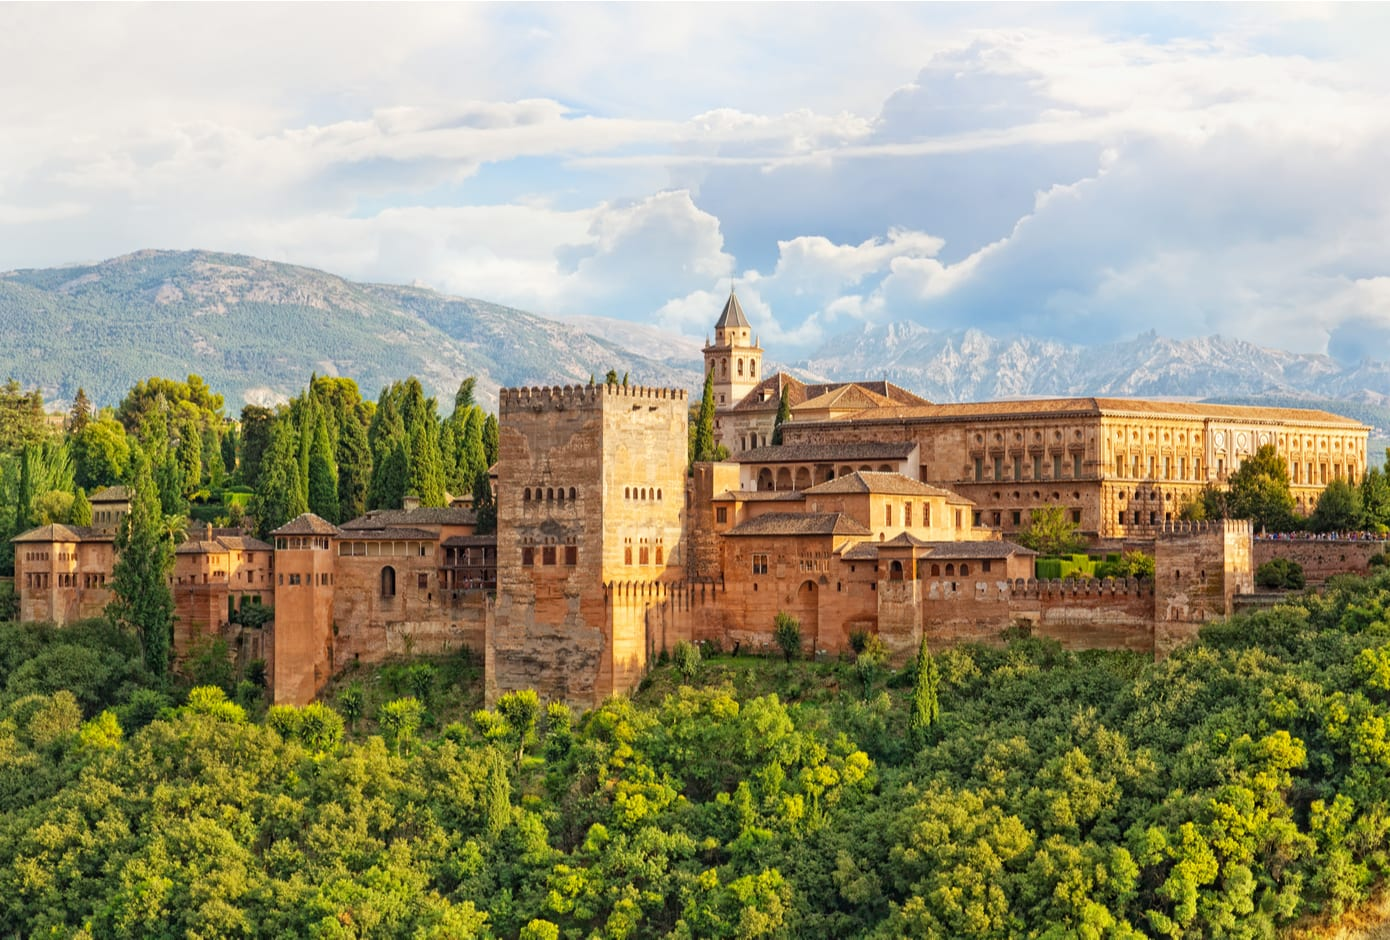 The ancient Alhambra fortress surrounded by a forest in Granada, Spain.